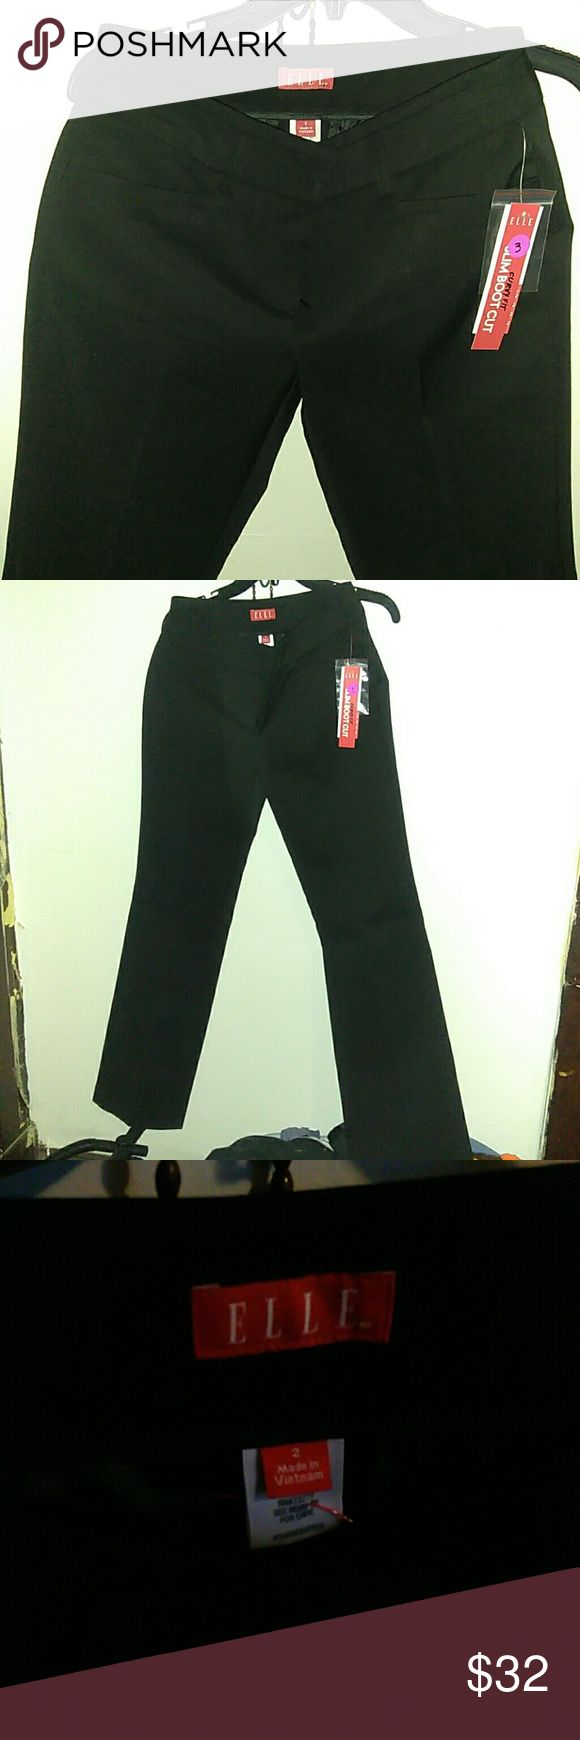 Curvy fit NWT Work Slacks black Black Business Casual work style pants. NWT. Elle brand. Size 2. Cotton polyester and spandex material See photos. Slim boot cut. Clasp and zipper. 2 front pockets. 2 buttons on the rear. casual day out or wear to work!! Elle Pants Boot Cut & Flare